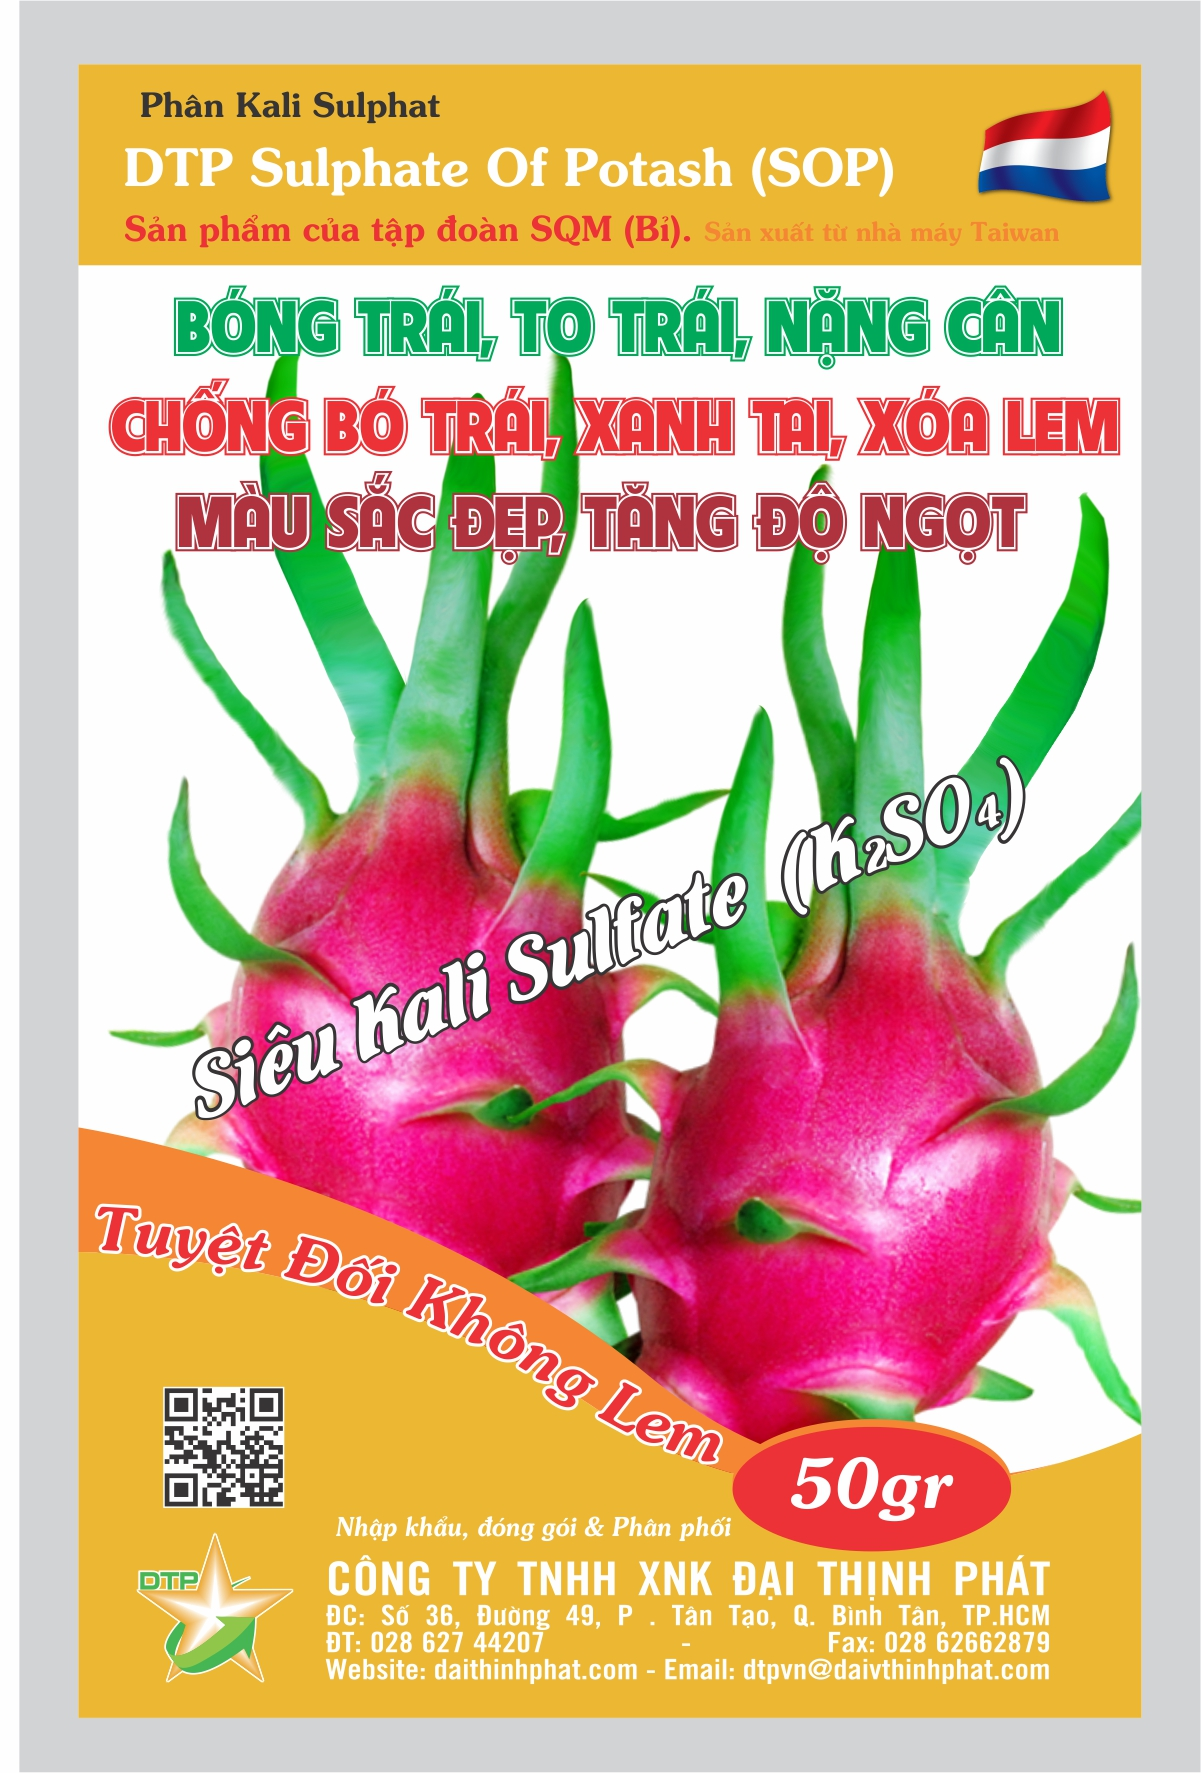 SOP- THANH LONG IN